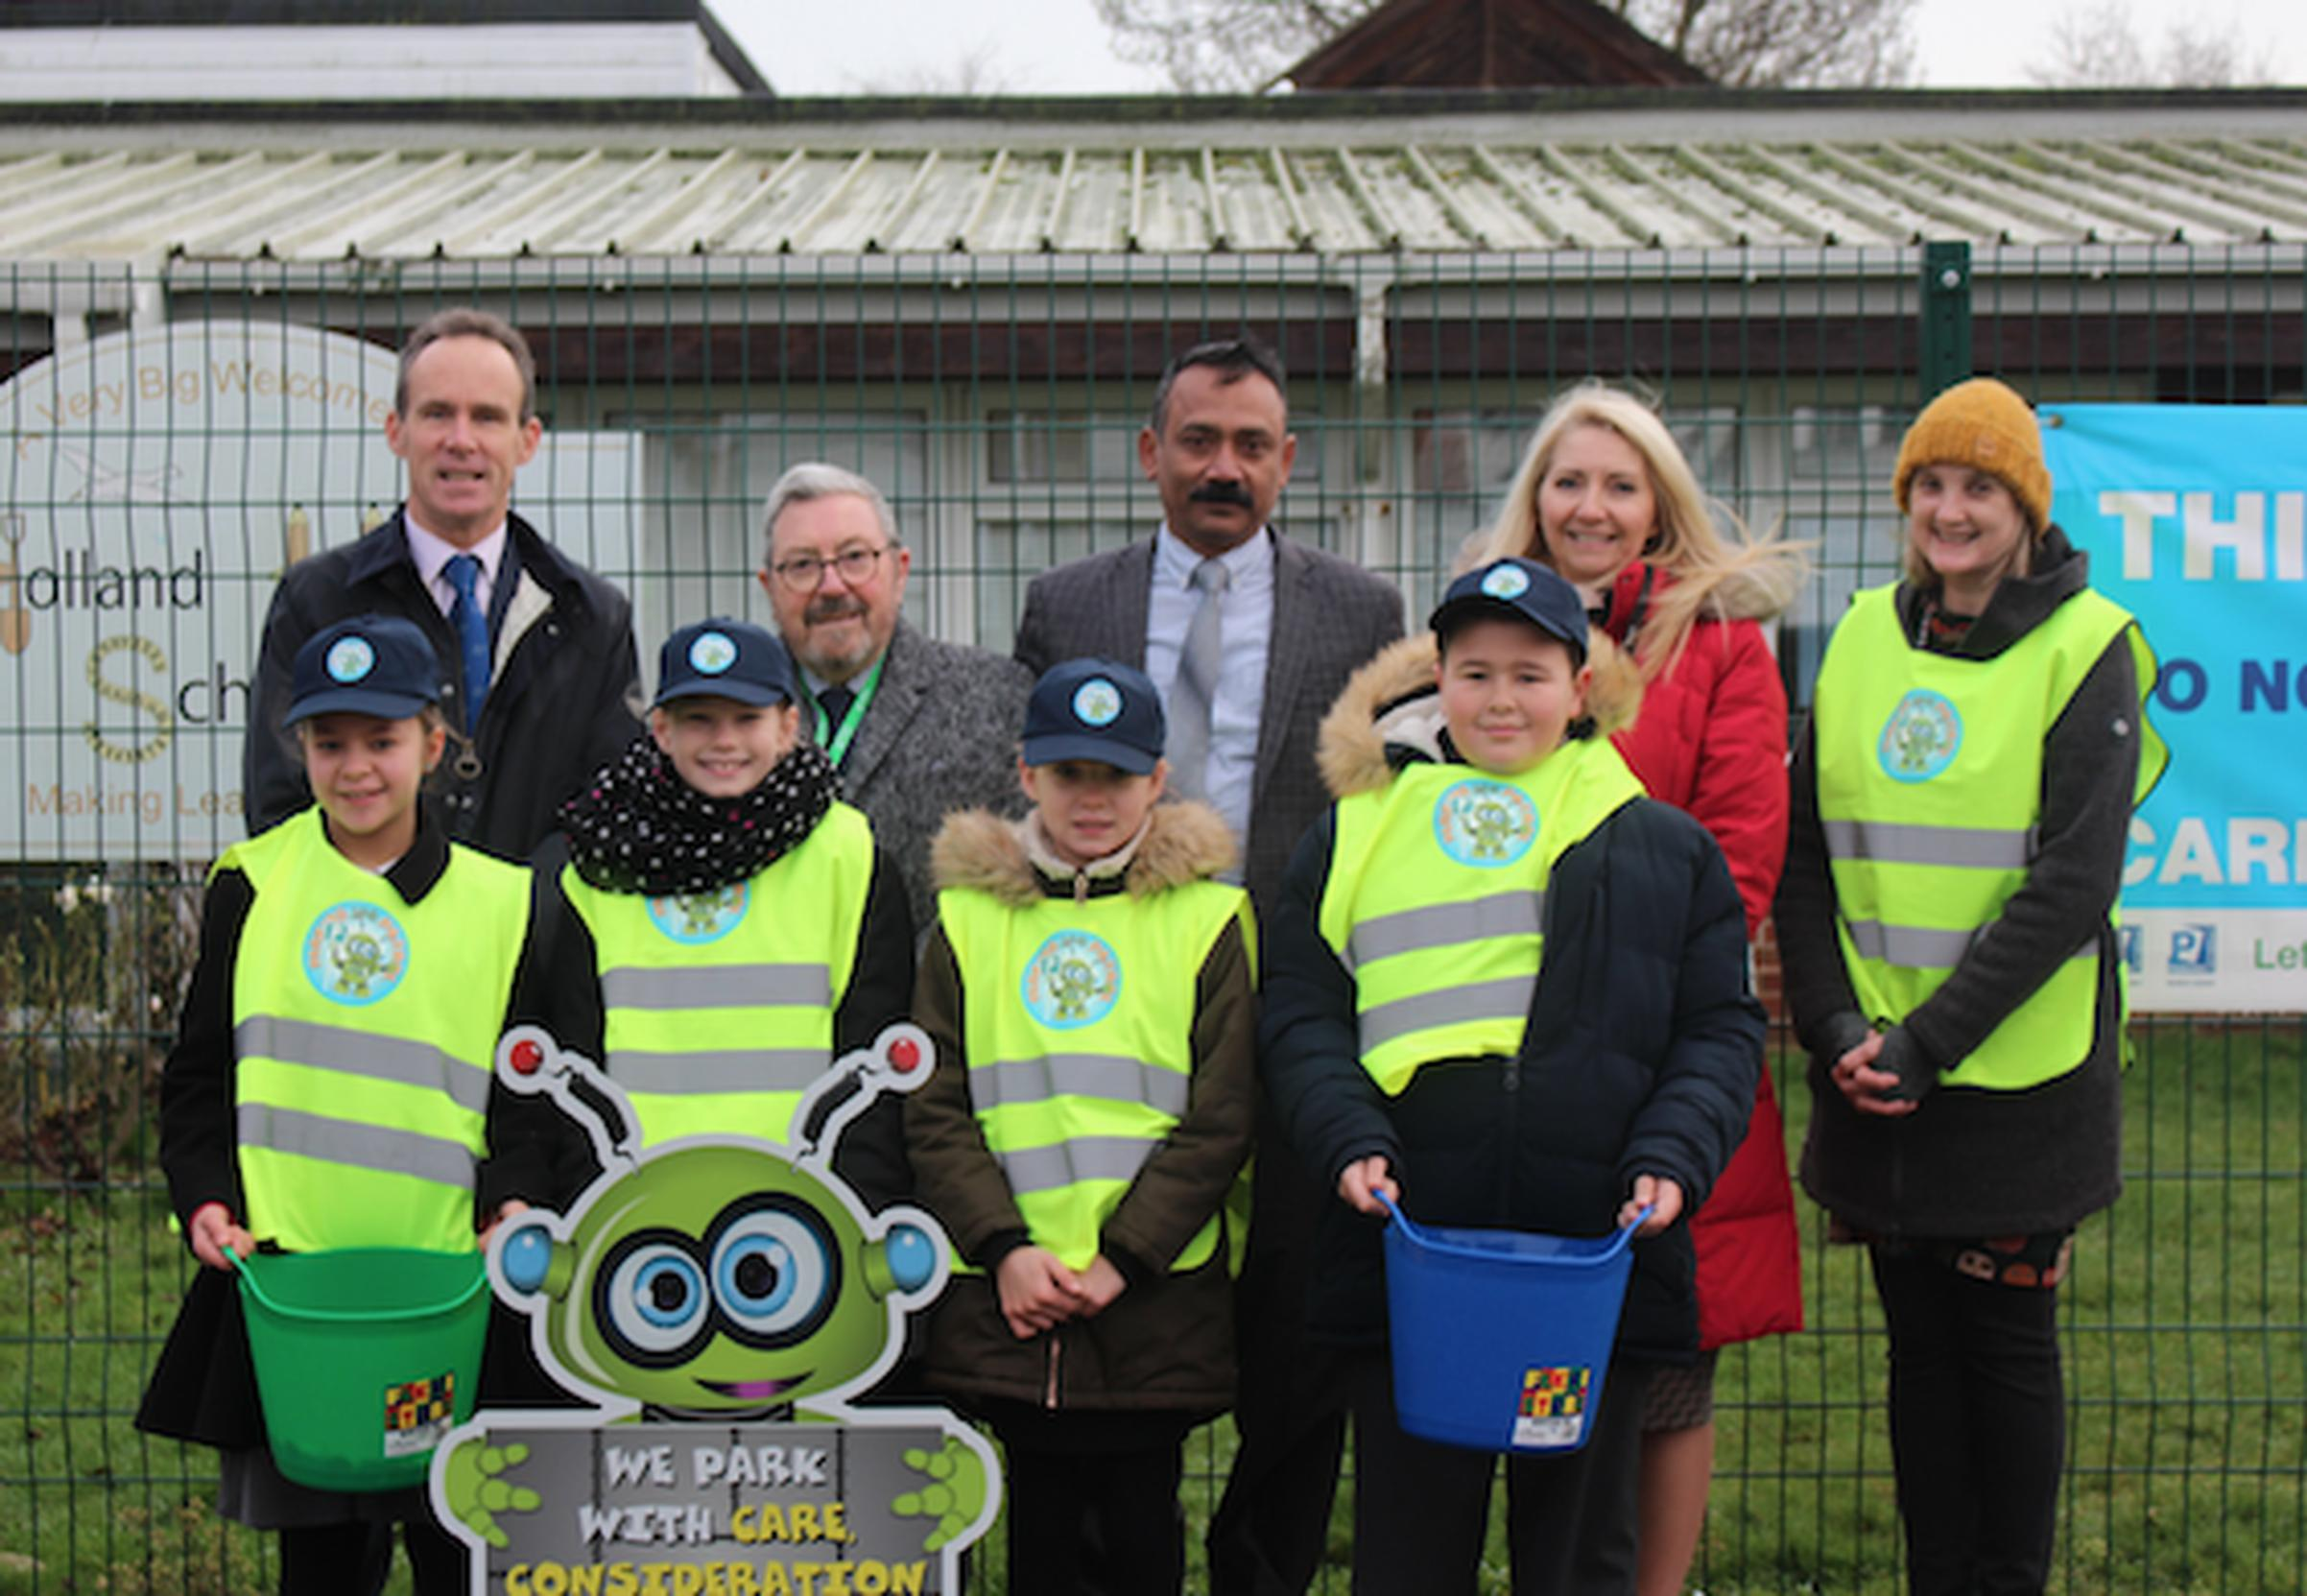 upils and staff from Holland Haven Primary School with Cllr Robert Mitchell (chair of NEPP), Cllrs Colin Winfield and Kanagasundaram King (Tendring District), Catherine Cole (deputy headteacher) and Emma Day (3PR project manager)